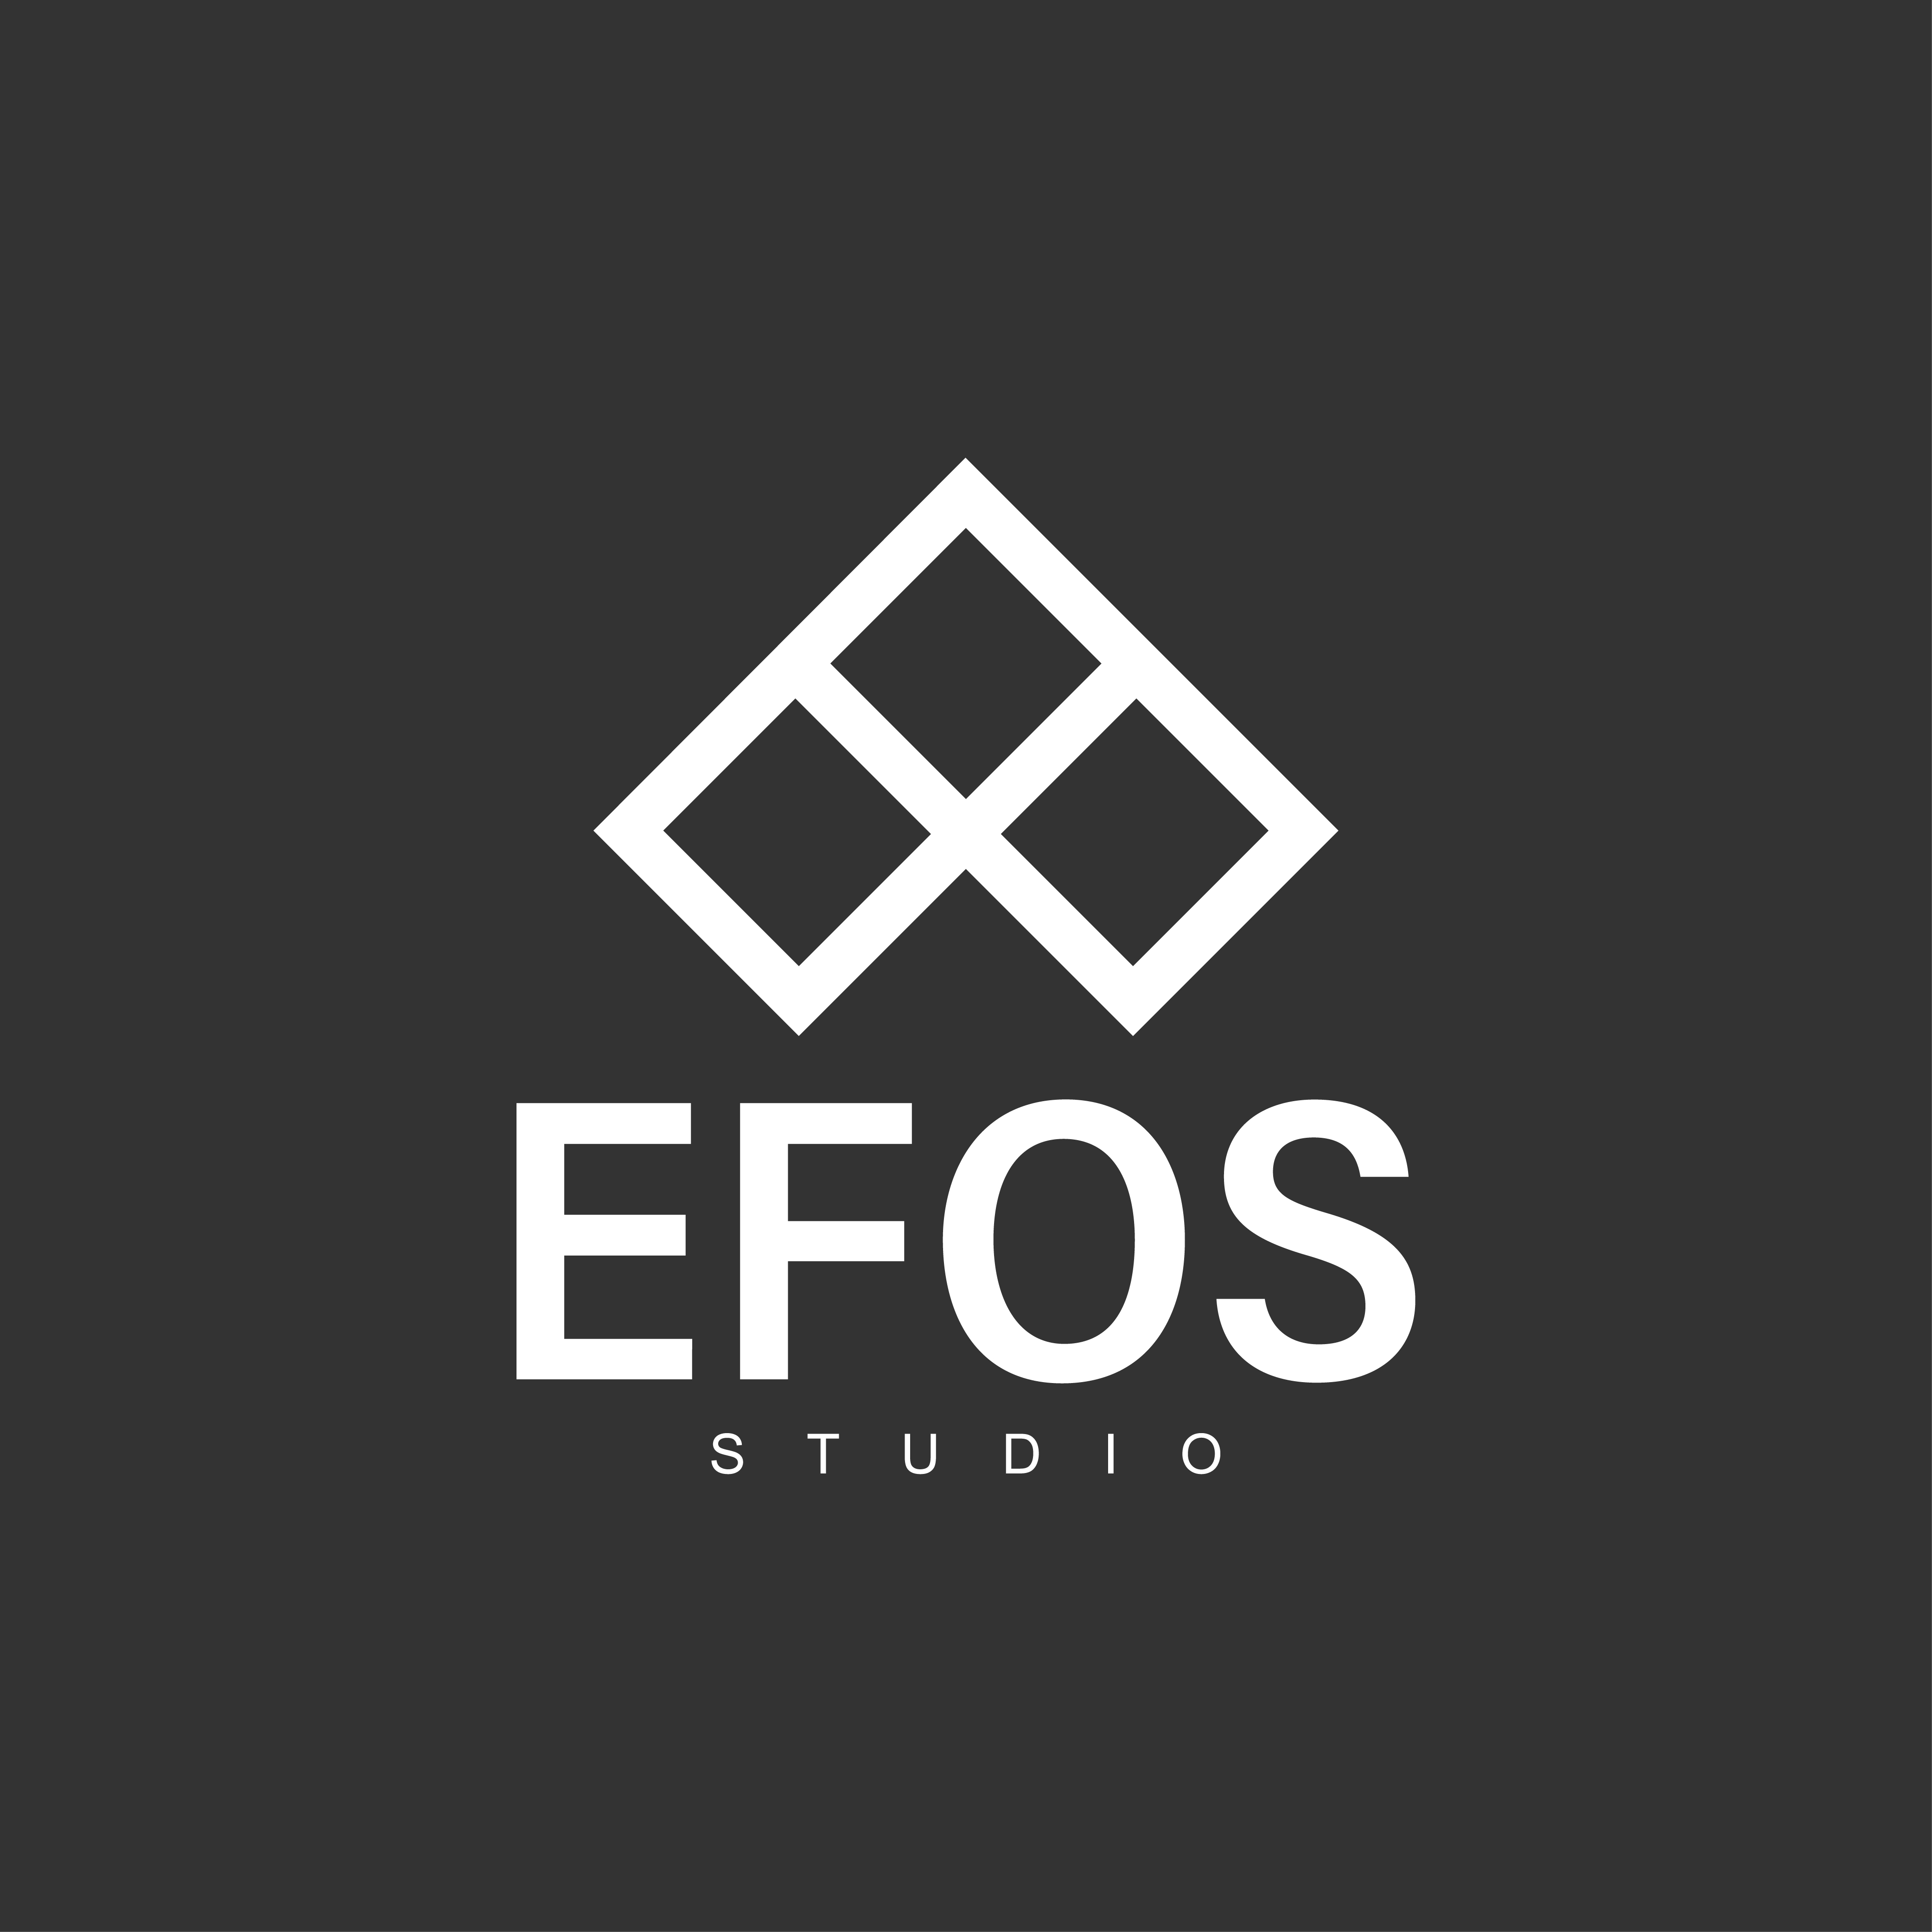 efosstudio's profile picture